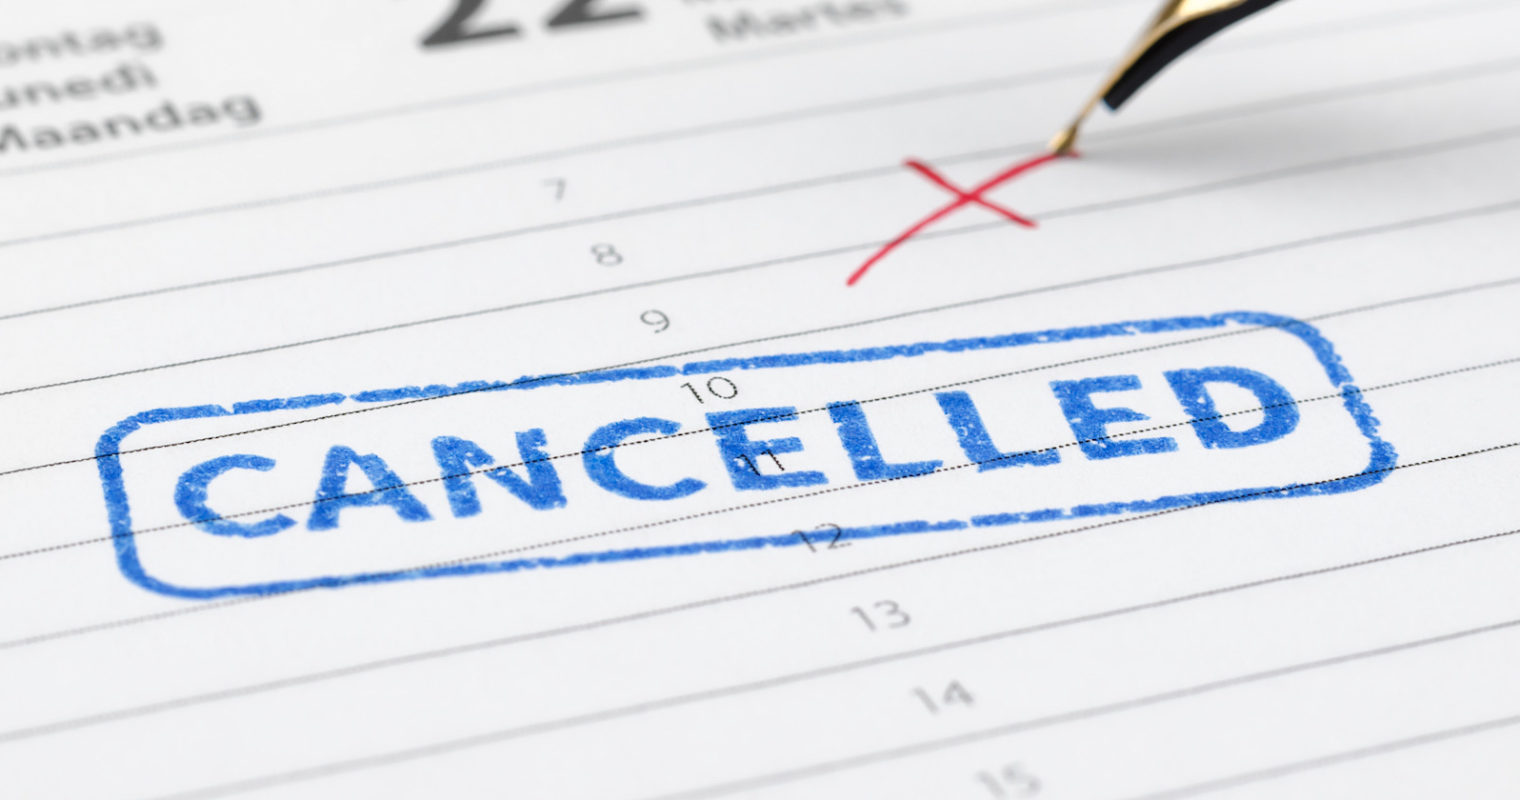 Google Cancels April Fools' Day Plans This Year Due to Coronavirus